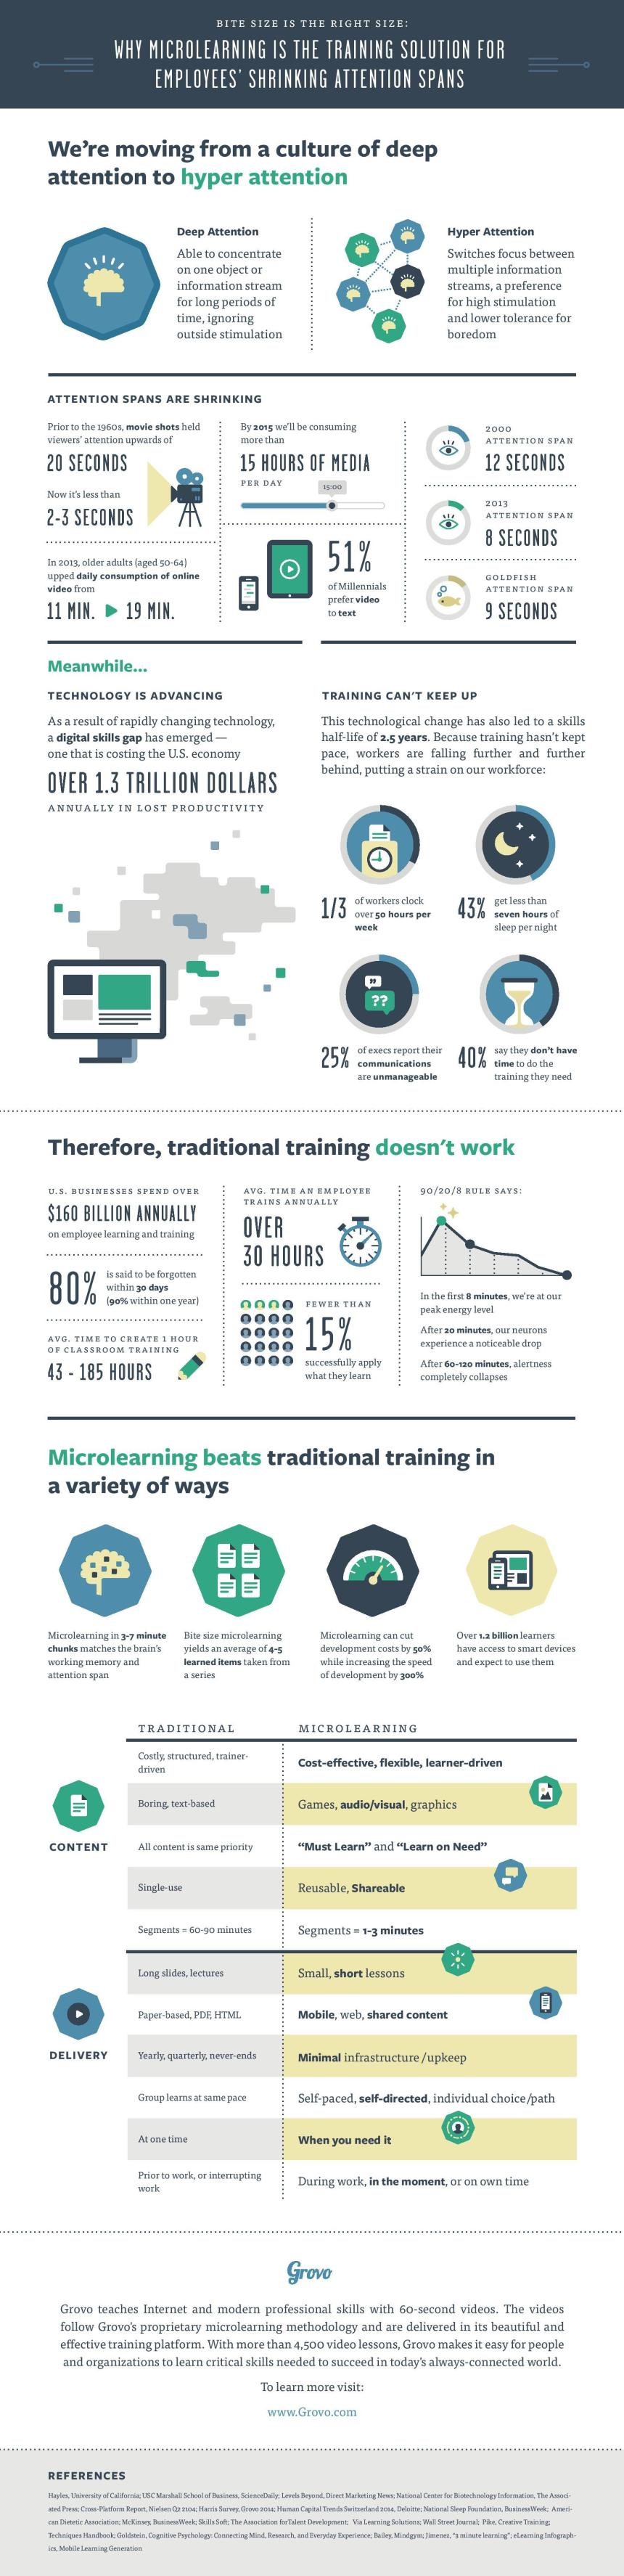 Traditional Training vs the Bite Size Approach Infographic